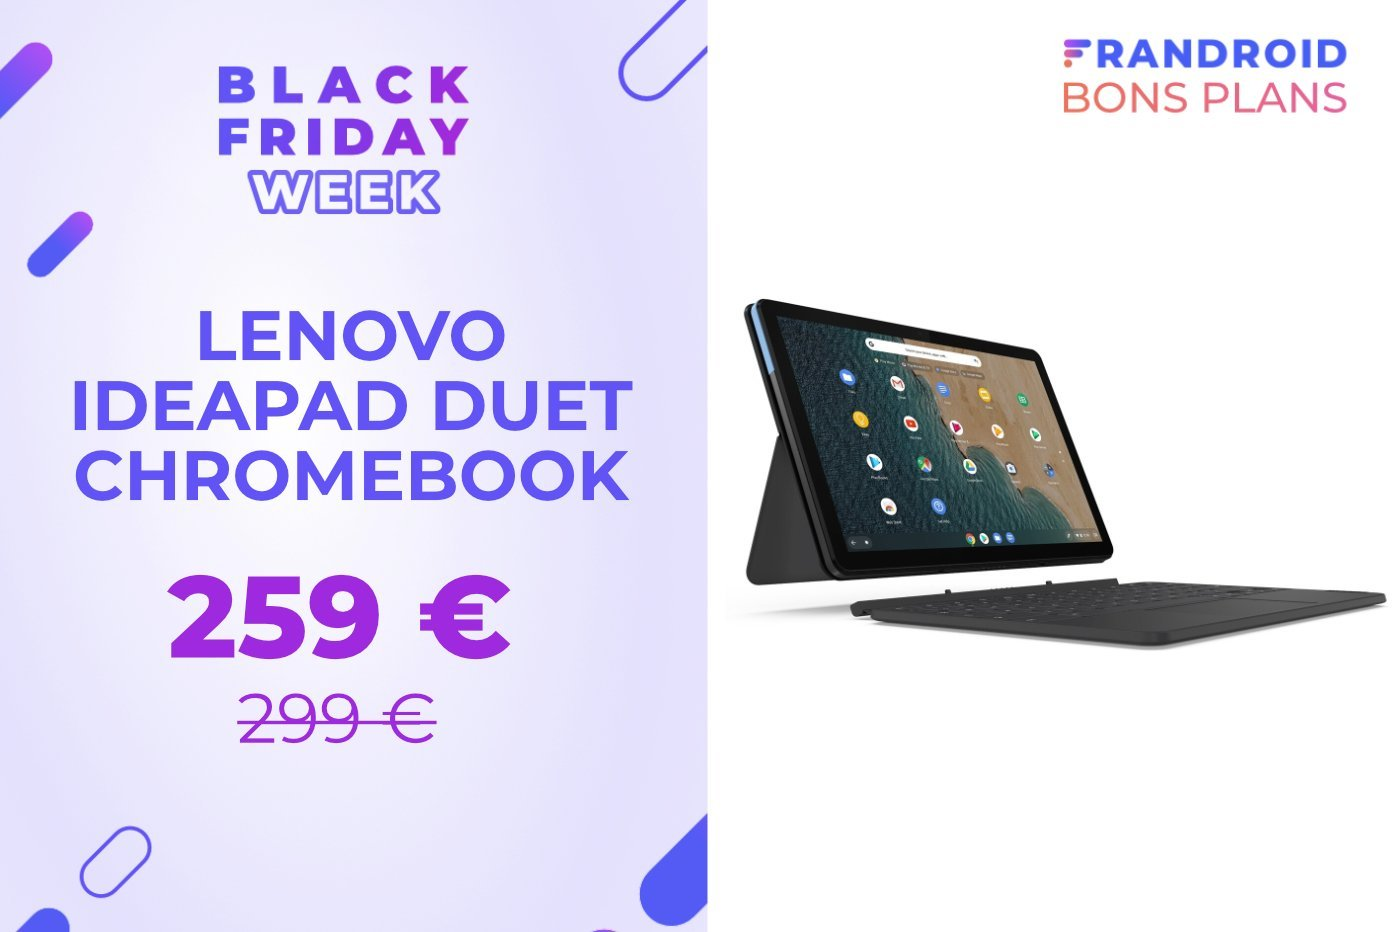 Le prix de la tablette Lenovo IdeaPad Duet Chromebook baisse de 40 € pour le Black Friday